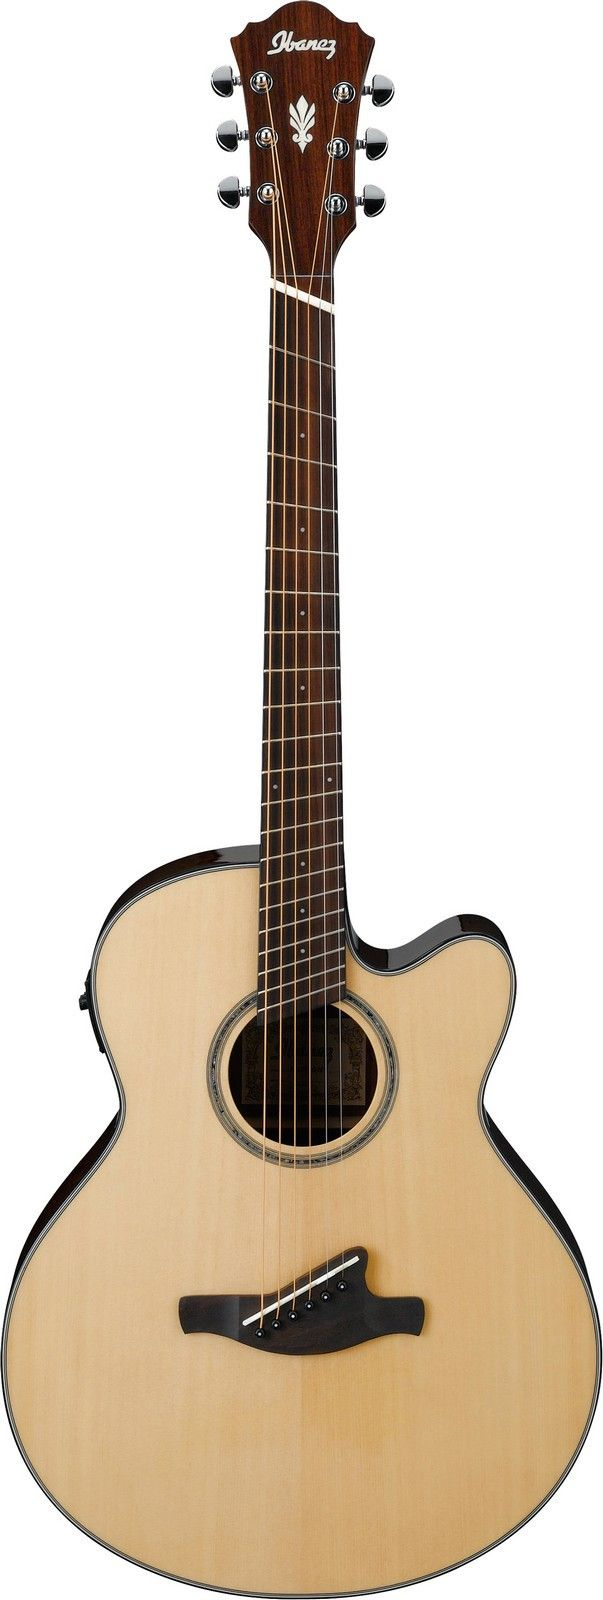 Dovetail template printable guitar - Ibanez Aelff10 Fanned Fret Acoustic Electric Guitar